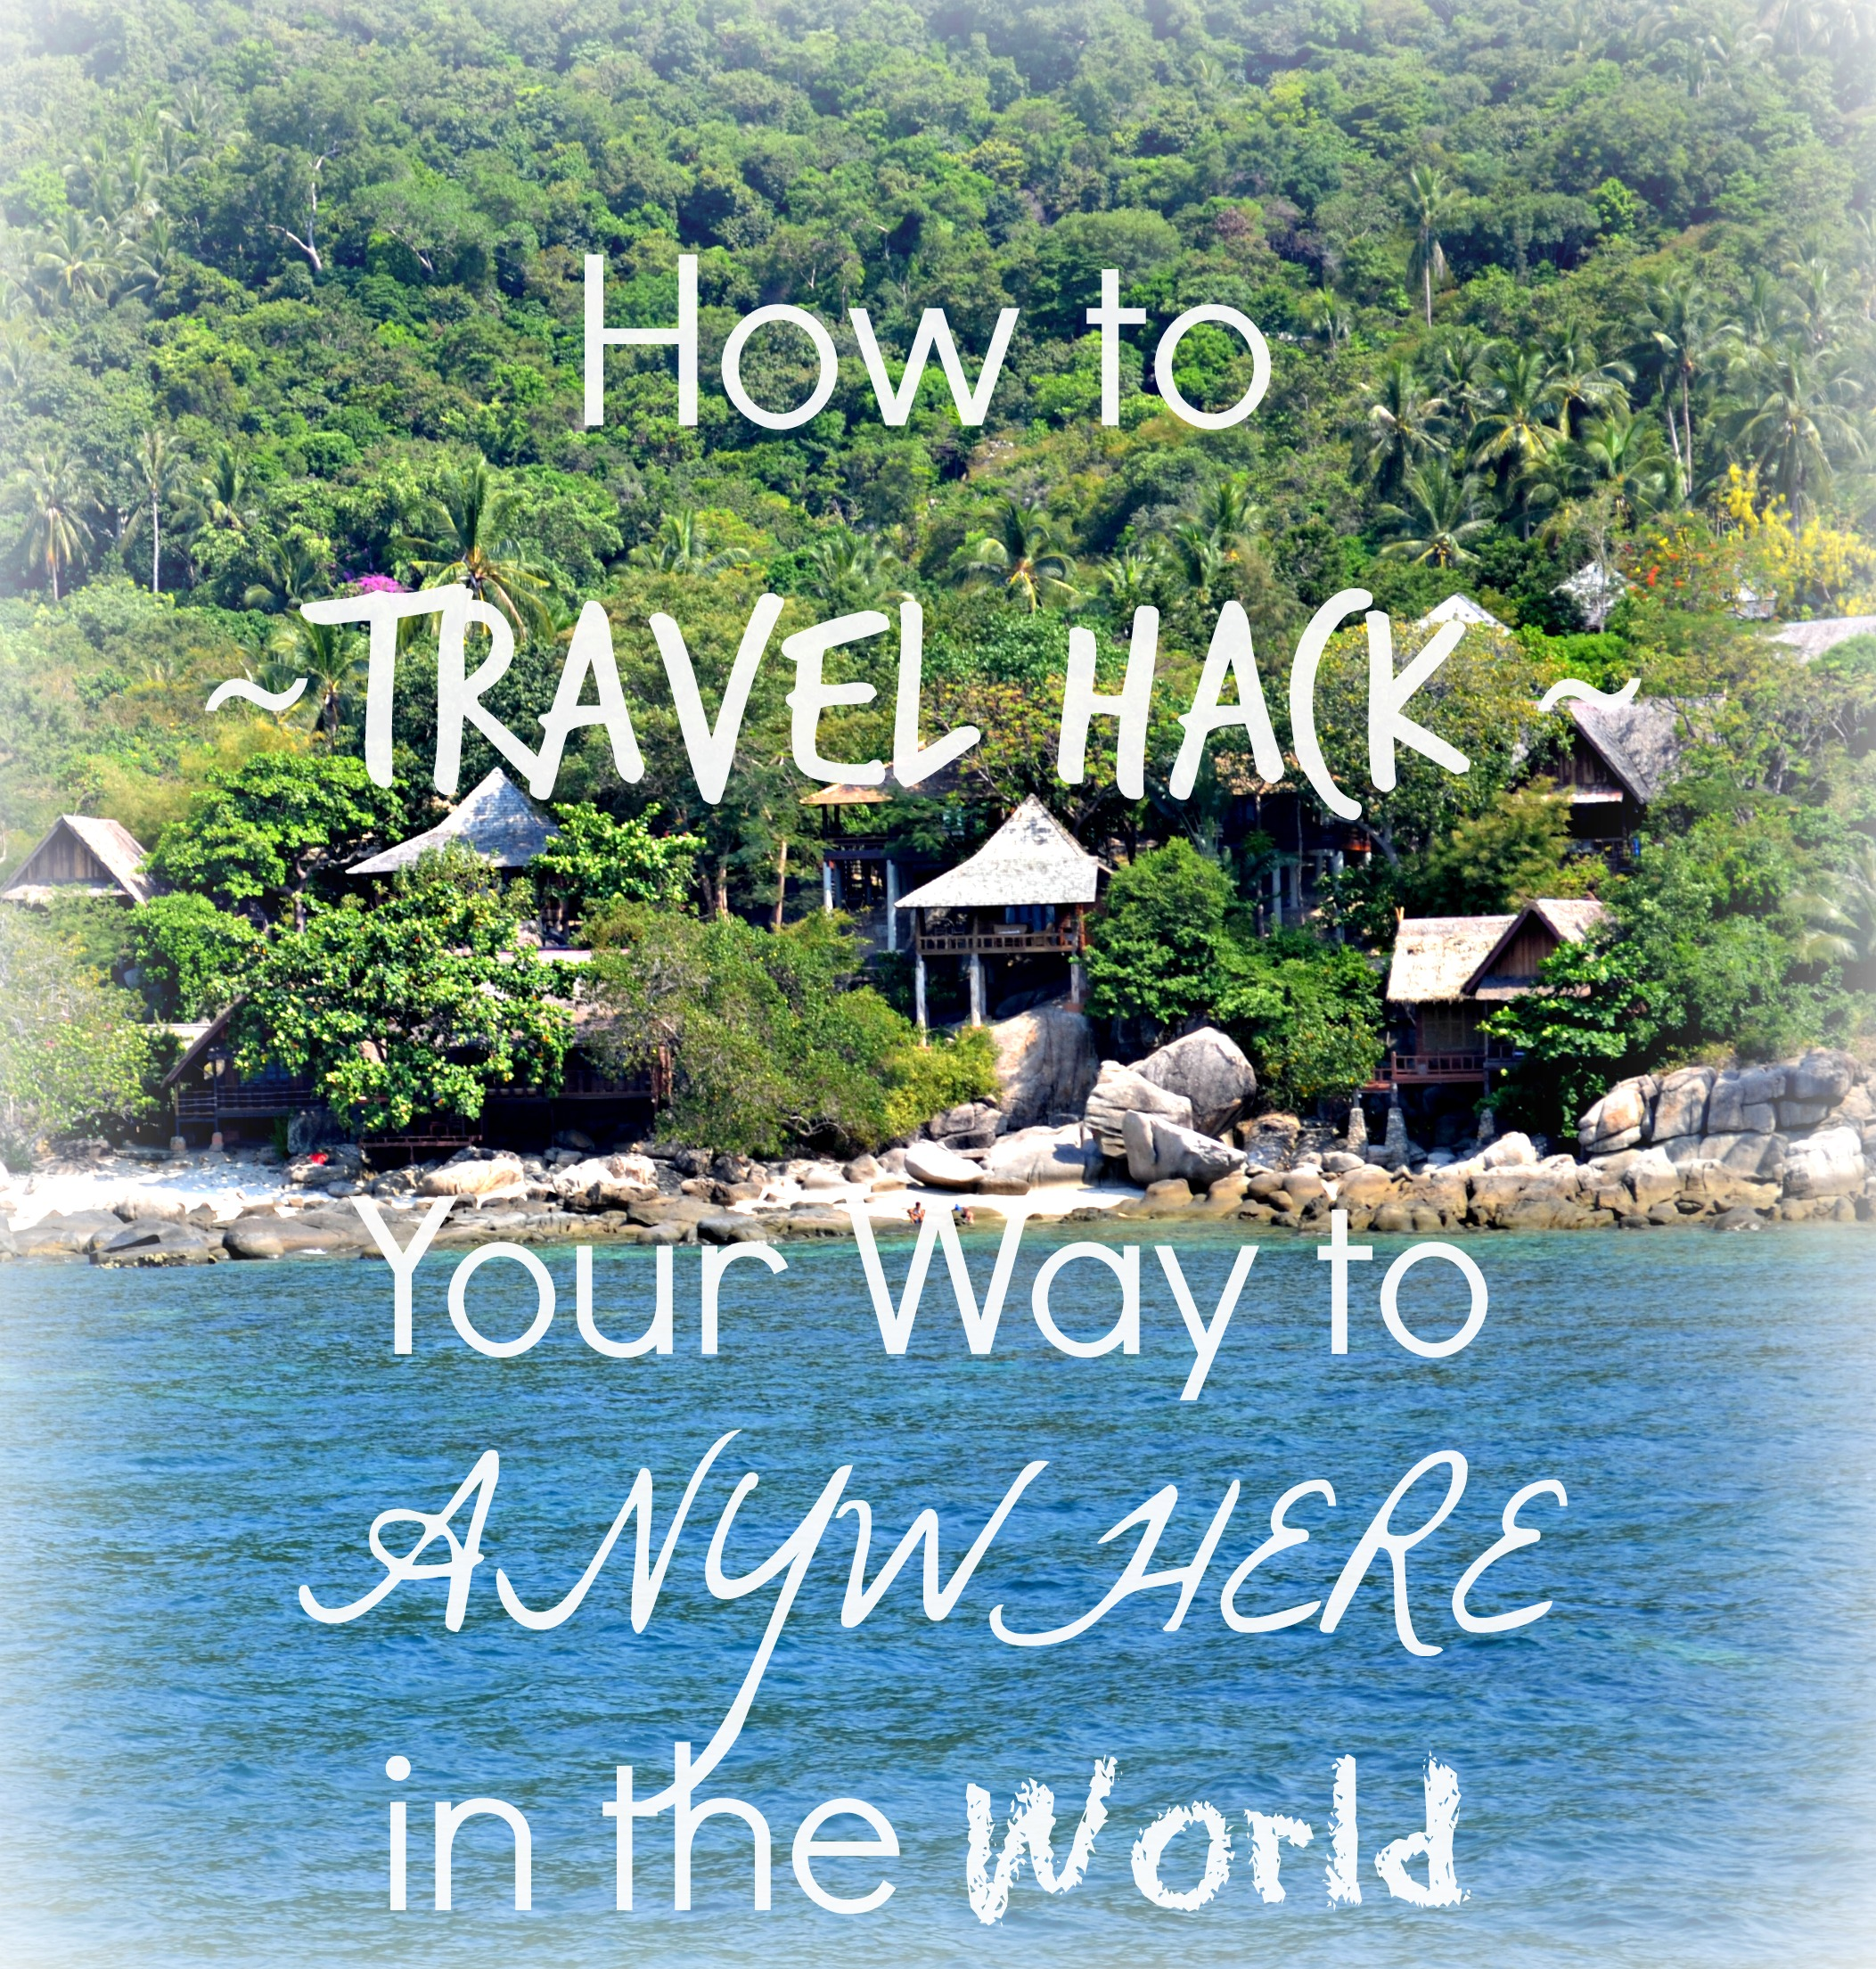 Travel Hacking Cartel - Welcome to the Cartel